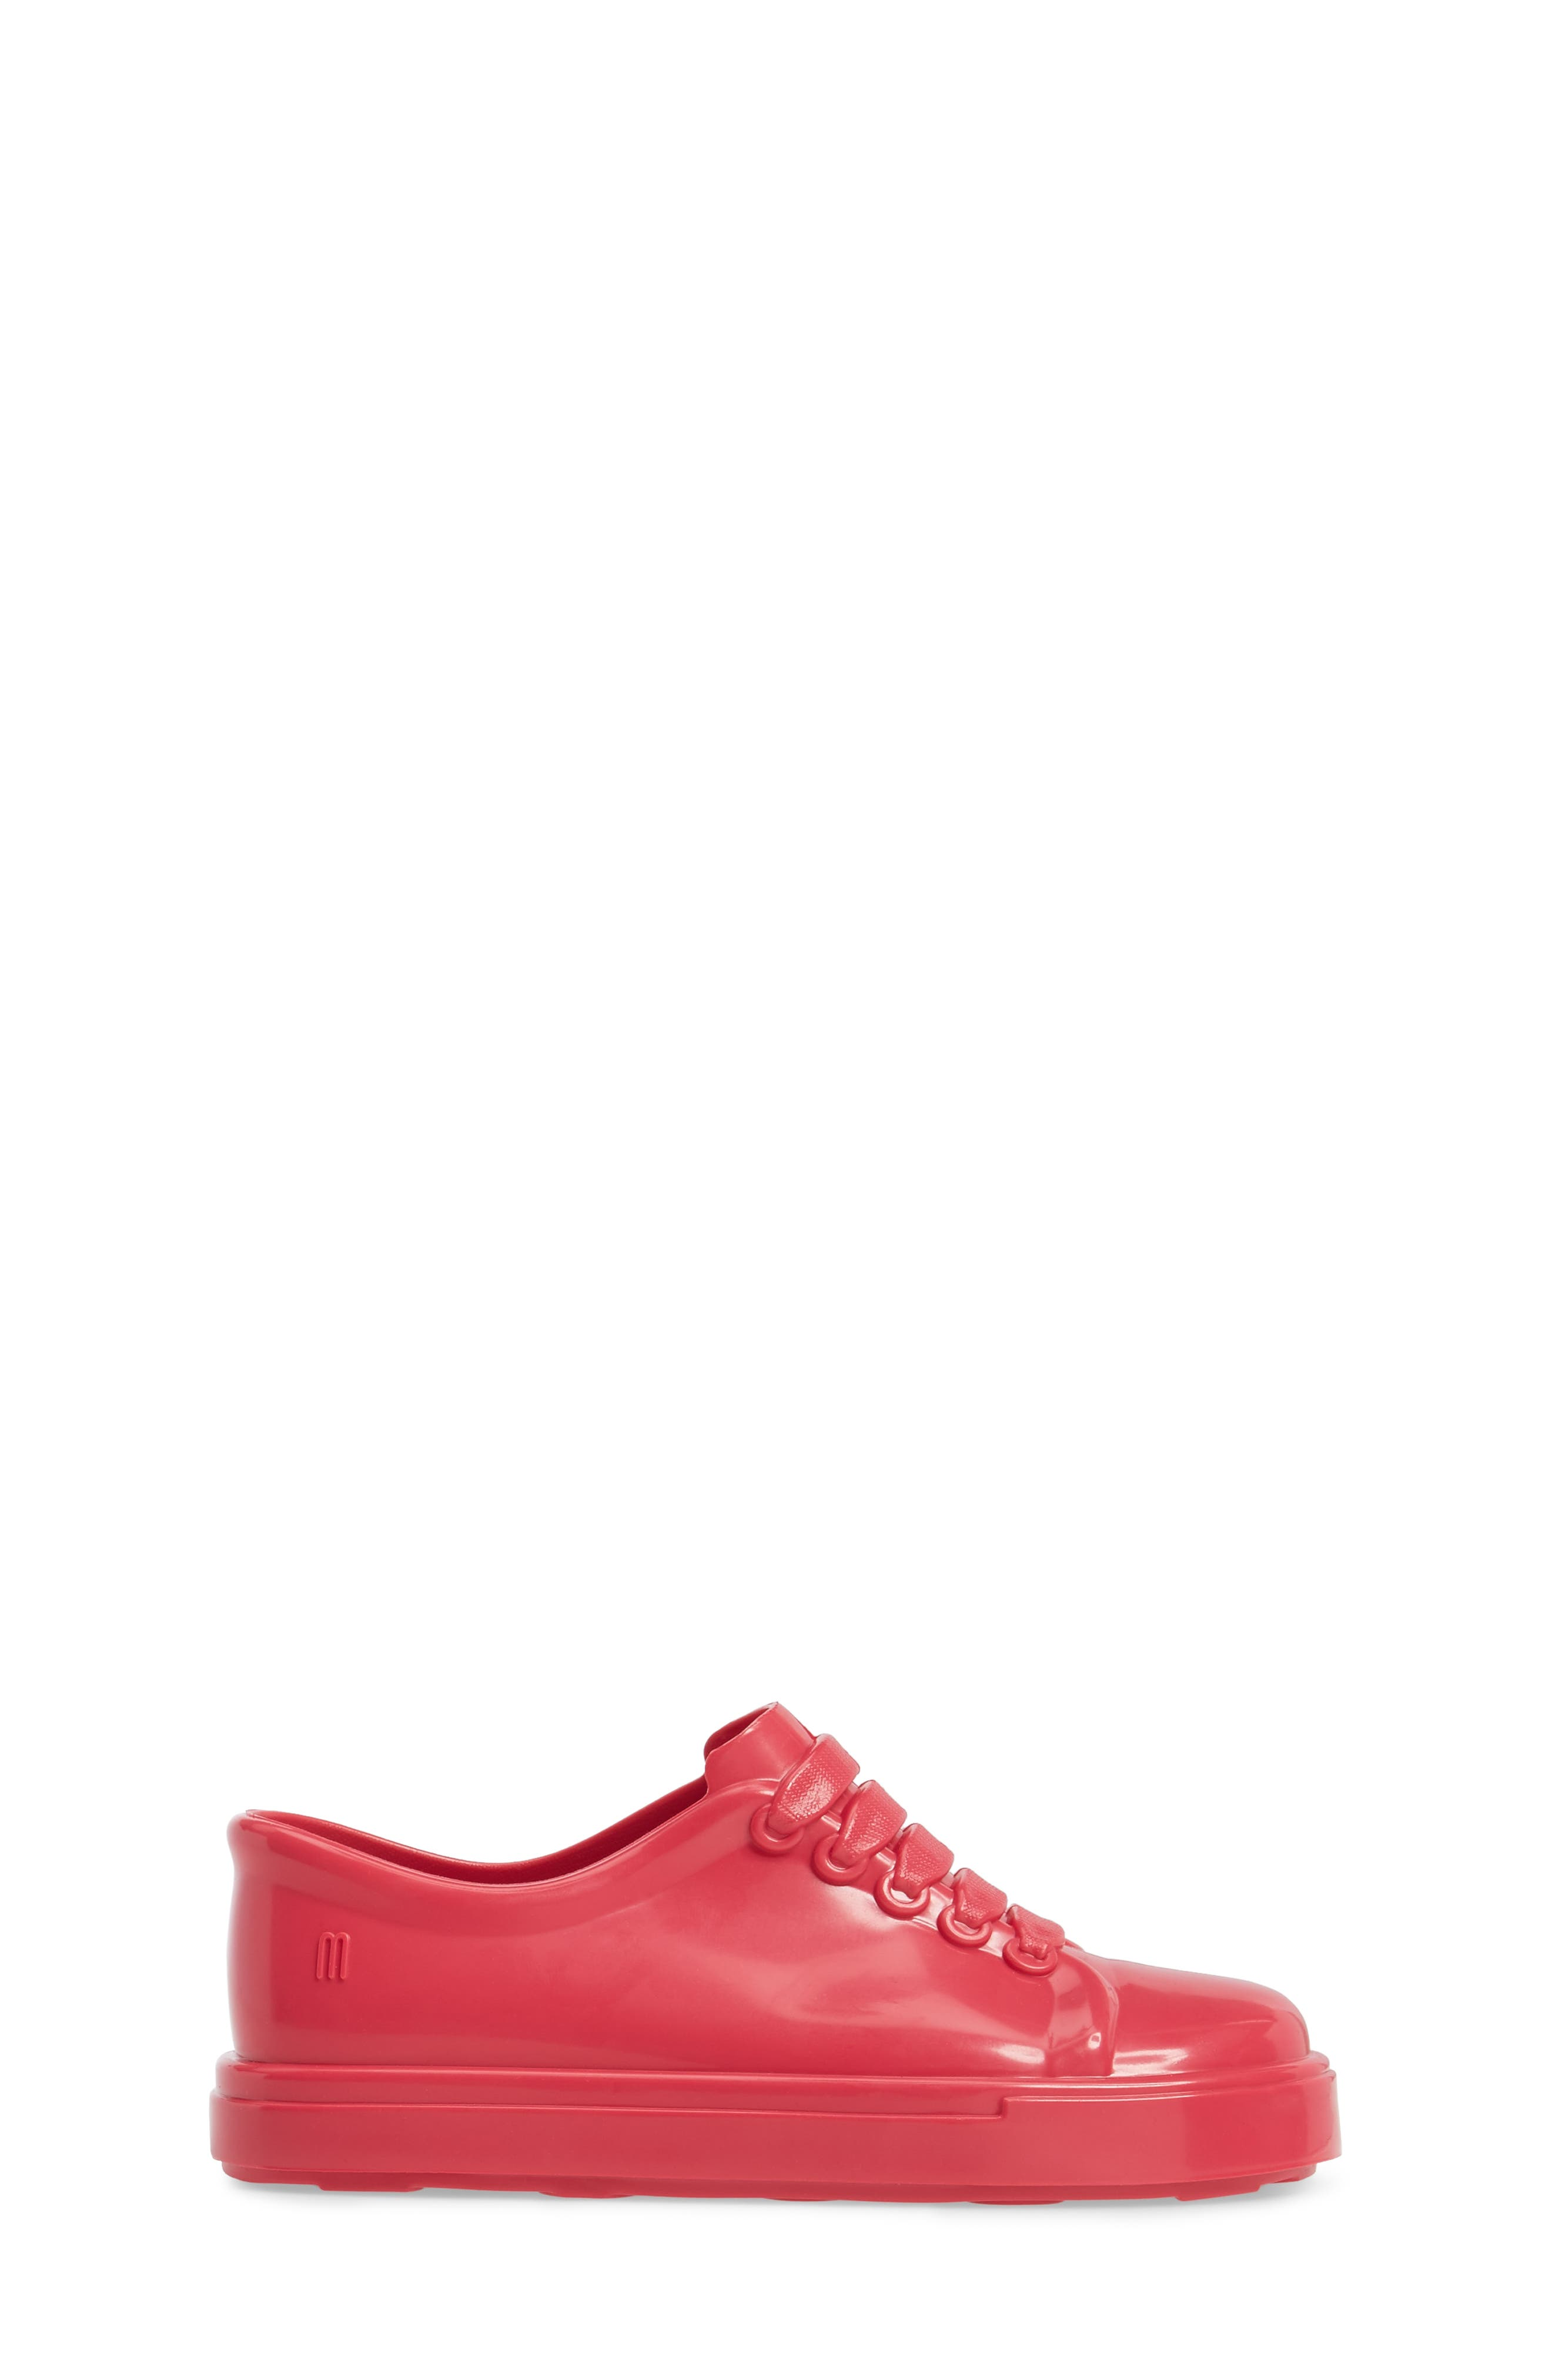 Be Slip-On Sneaker,                             Alternate thumbnail 3, color,                             Fuchsia